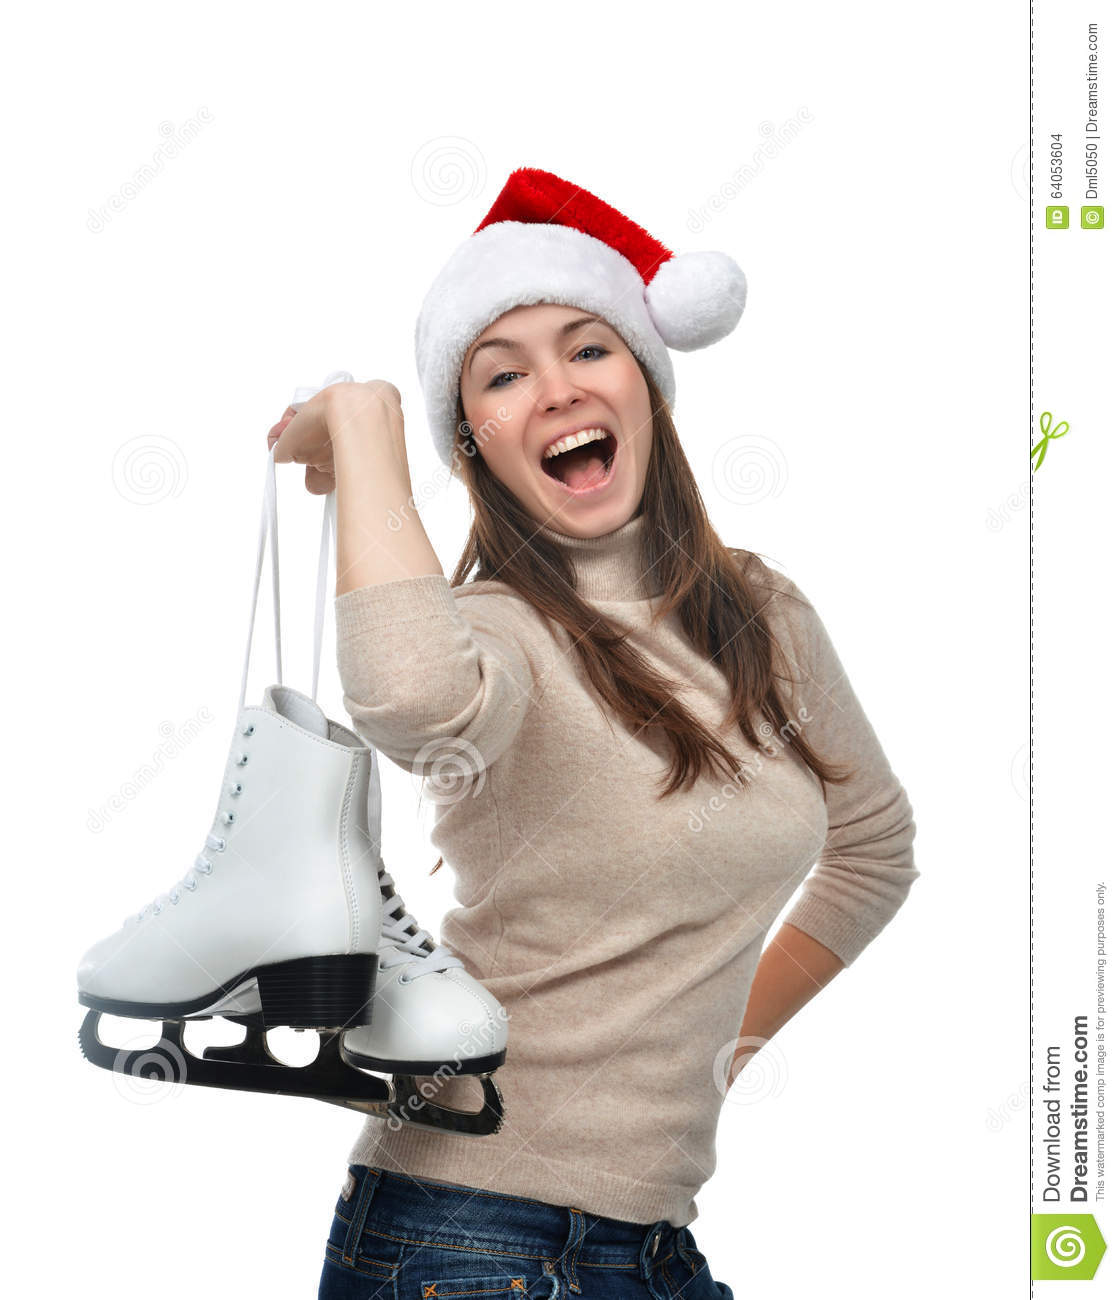 a8e107df02b Woman with ice skates getting ready for ice skating winter sport activity  in christmas santa hat screaming or yelling isolated on a white background